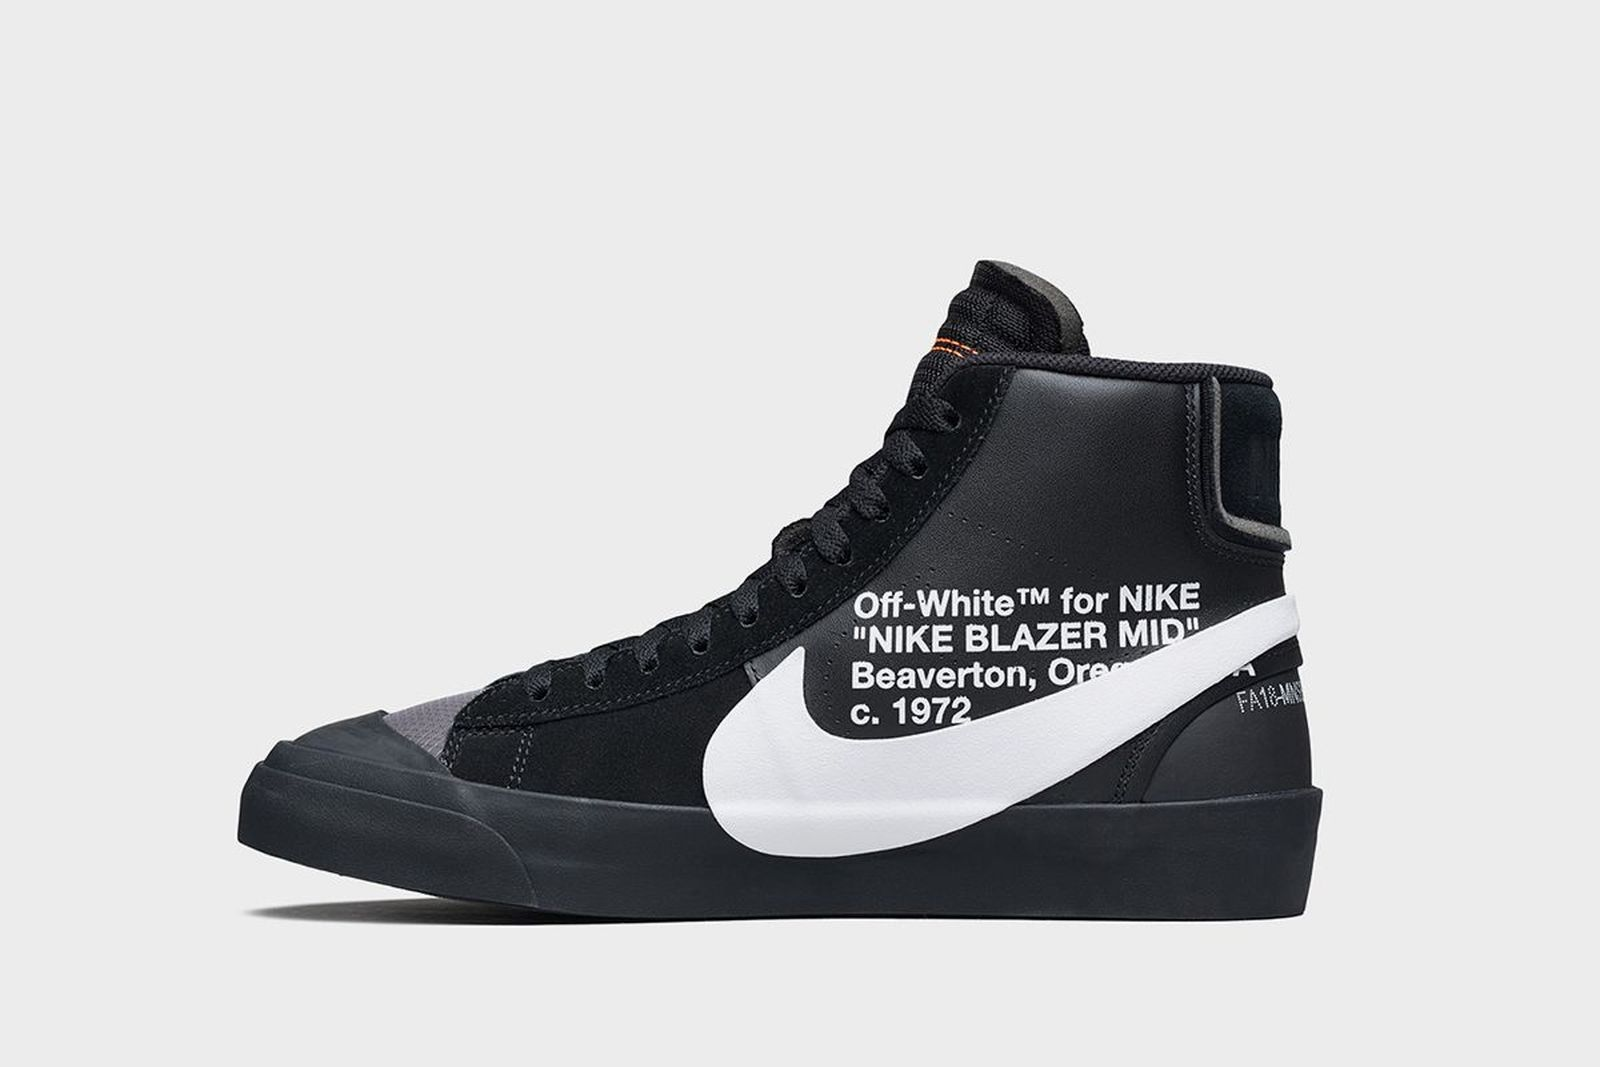 http whatdropsnow.s3.amazonaws.comproduct imagesimages1374148fca038dbd4009880c3b072be3cc628e35ca02d8 GOAT Nike The Ten OFF-WHITE c/o Virgil Abloh